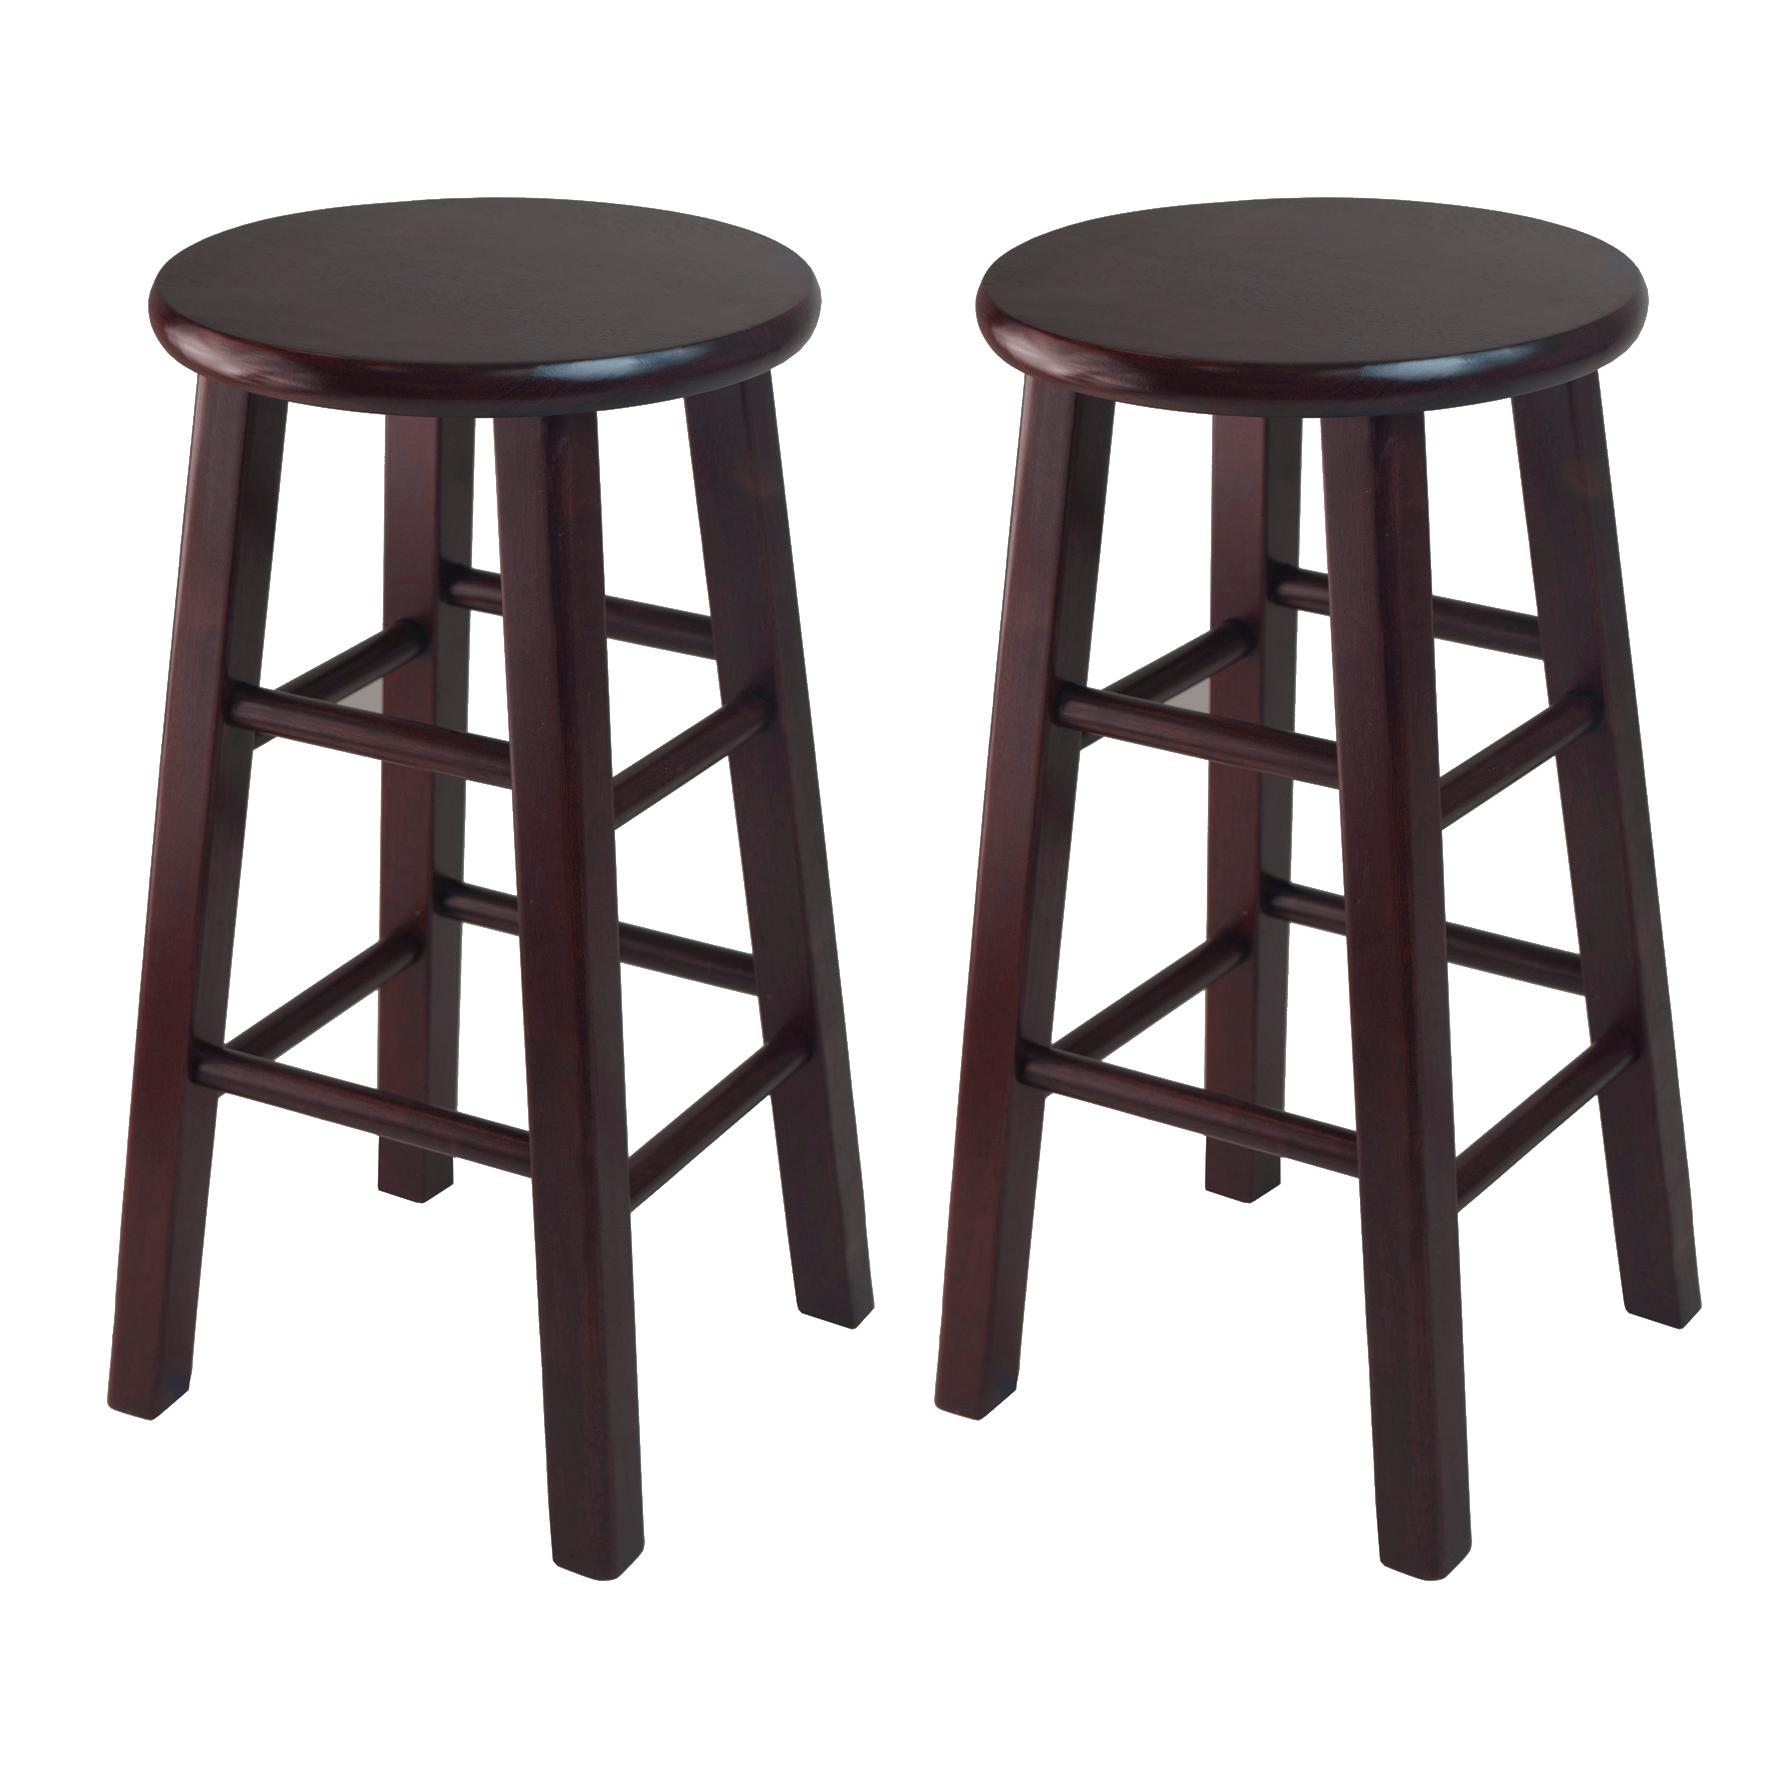 Amazon Winsome Counter Stool with Square Legs 24 Inch